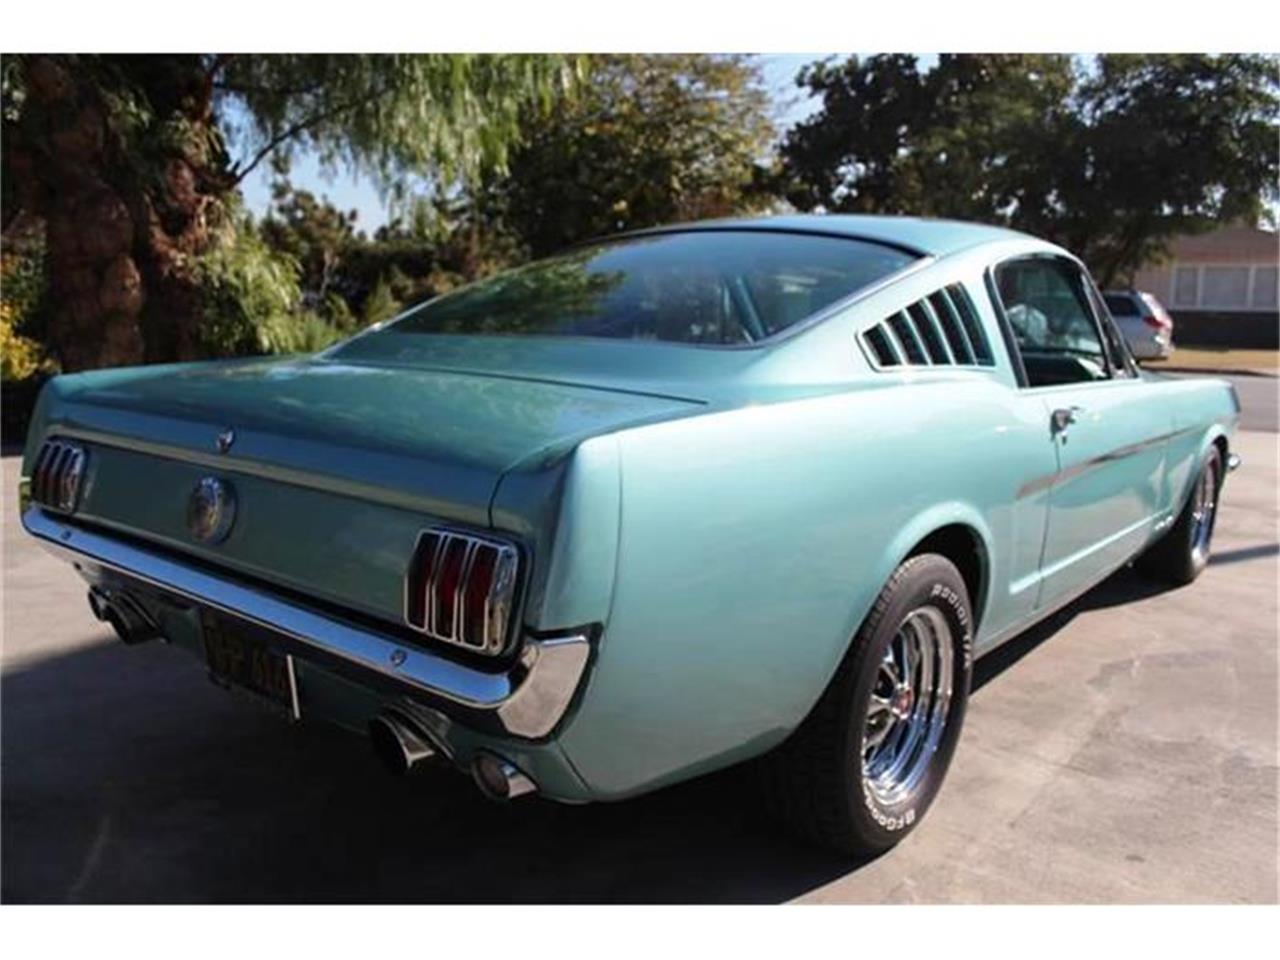 Large Picture of '66 Mustang located in West Covina California Offered by a Private Seller - BFEI